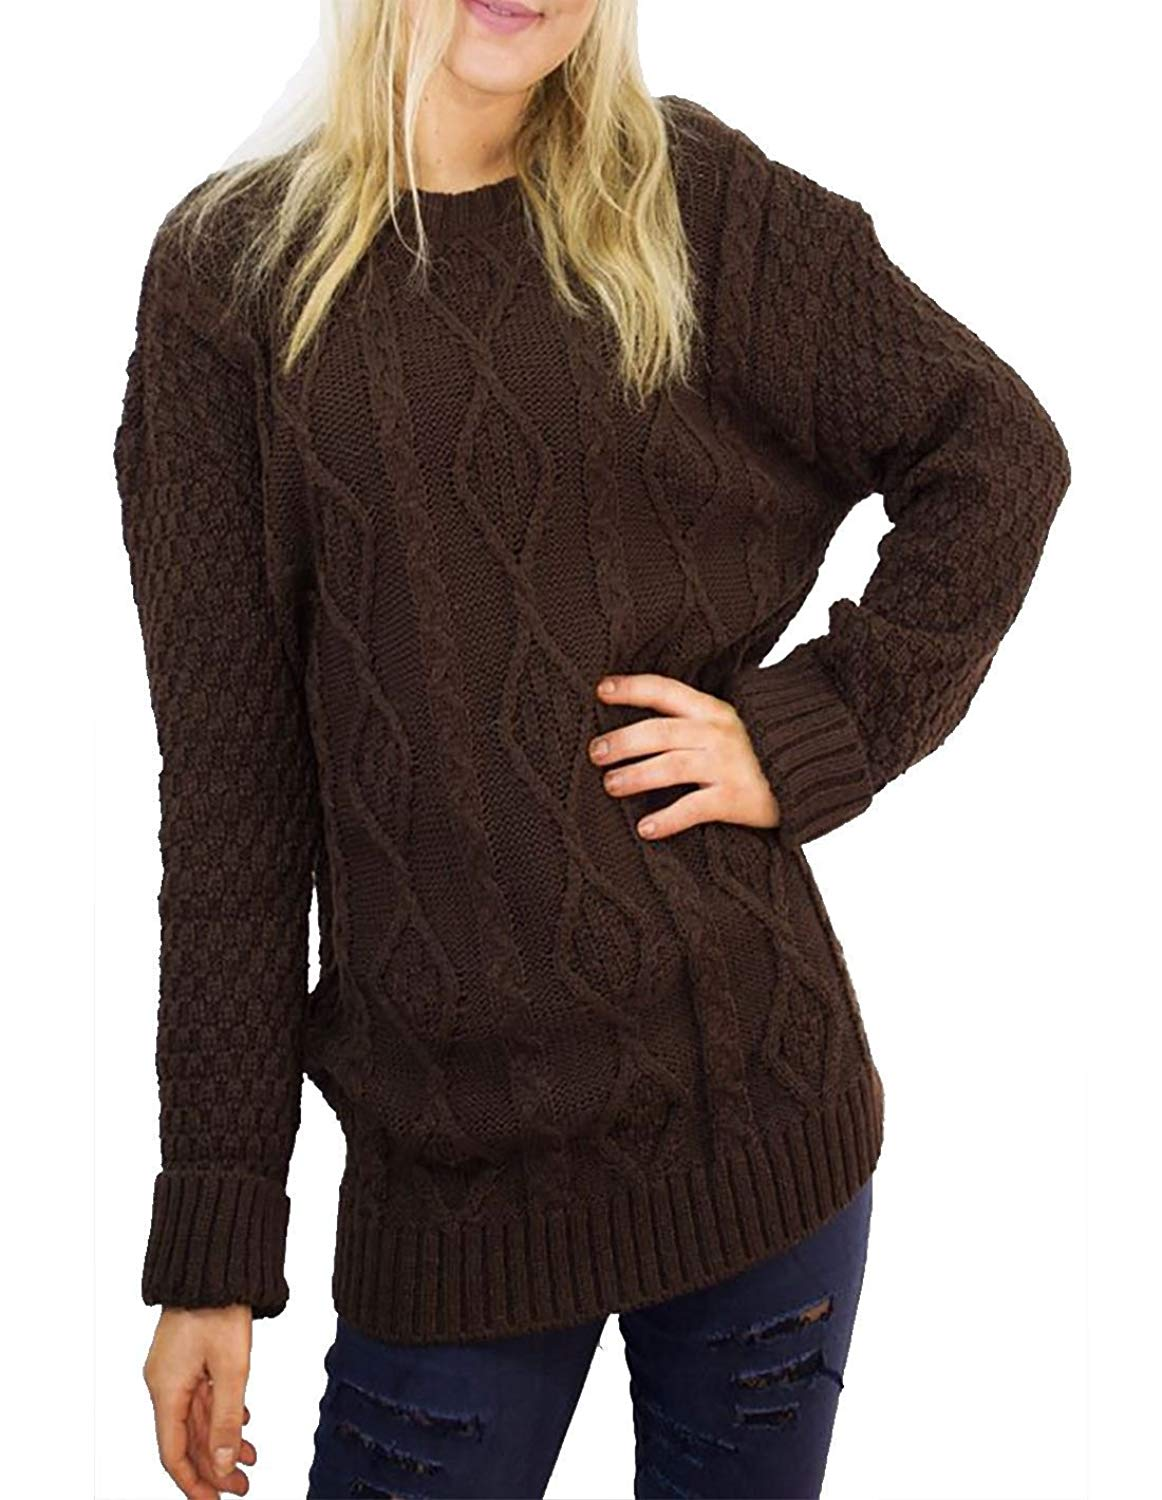 8863c831d4 Get Quotations · Womens Ladies Chunky Cable Knitted Long Sleeve Pullover  Jumper Sweater Top Small X-Large